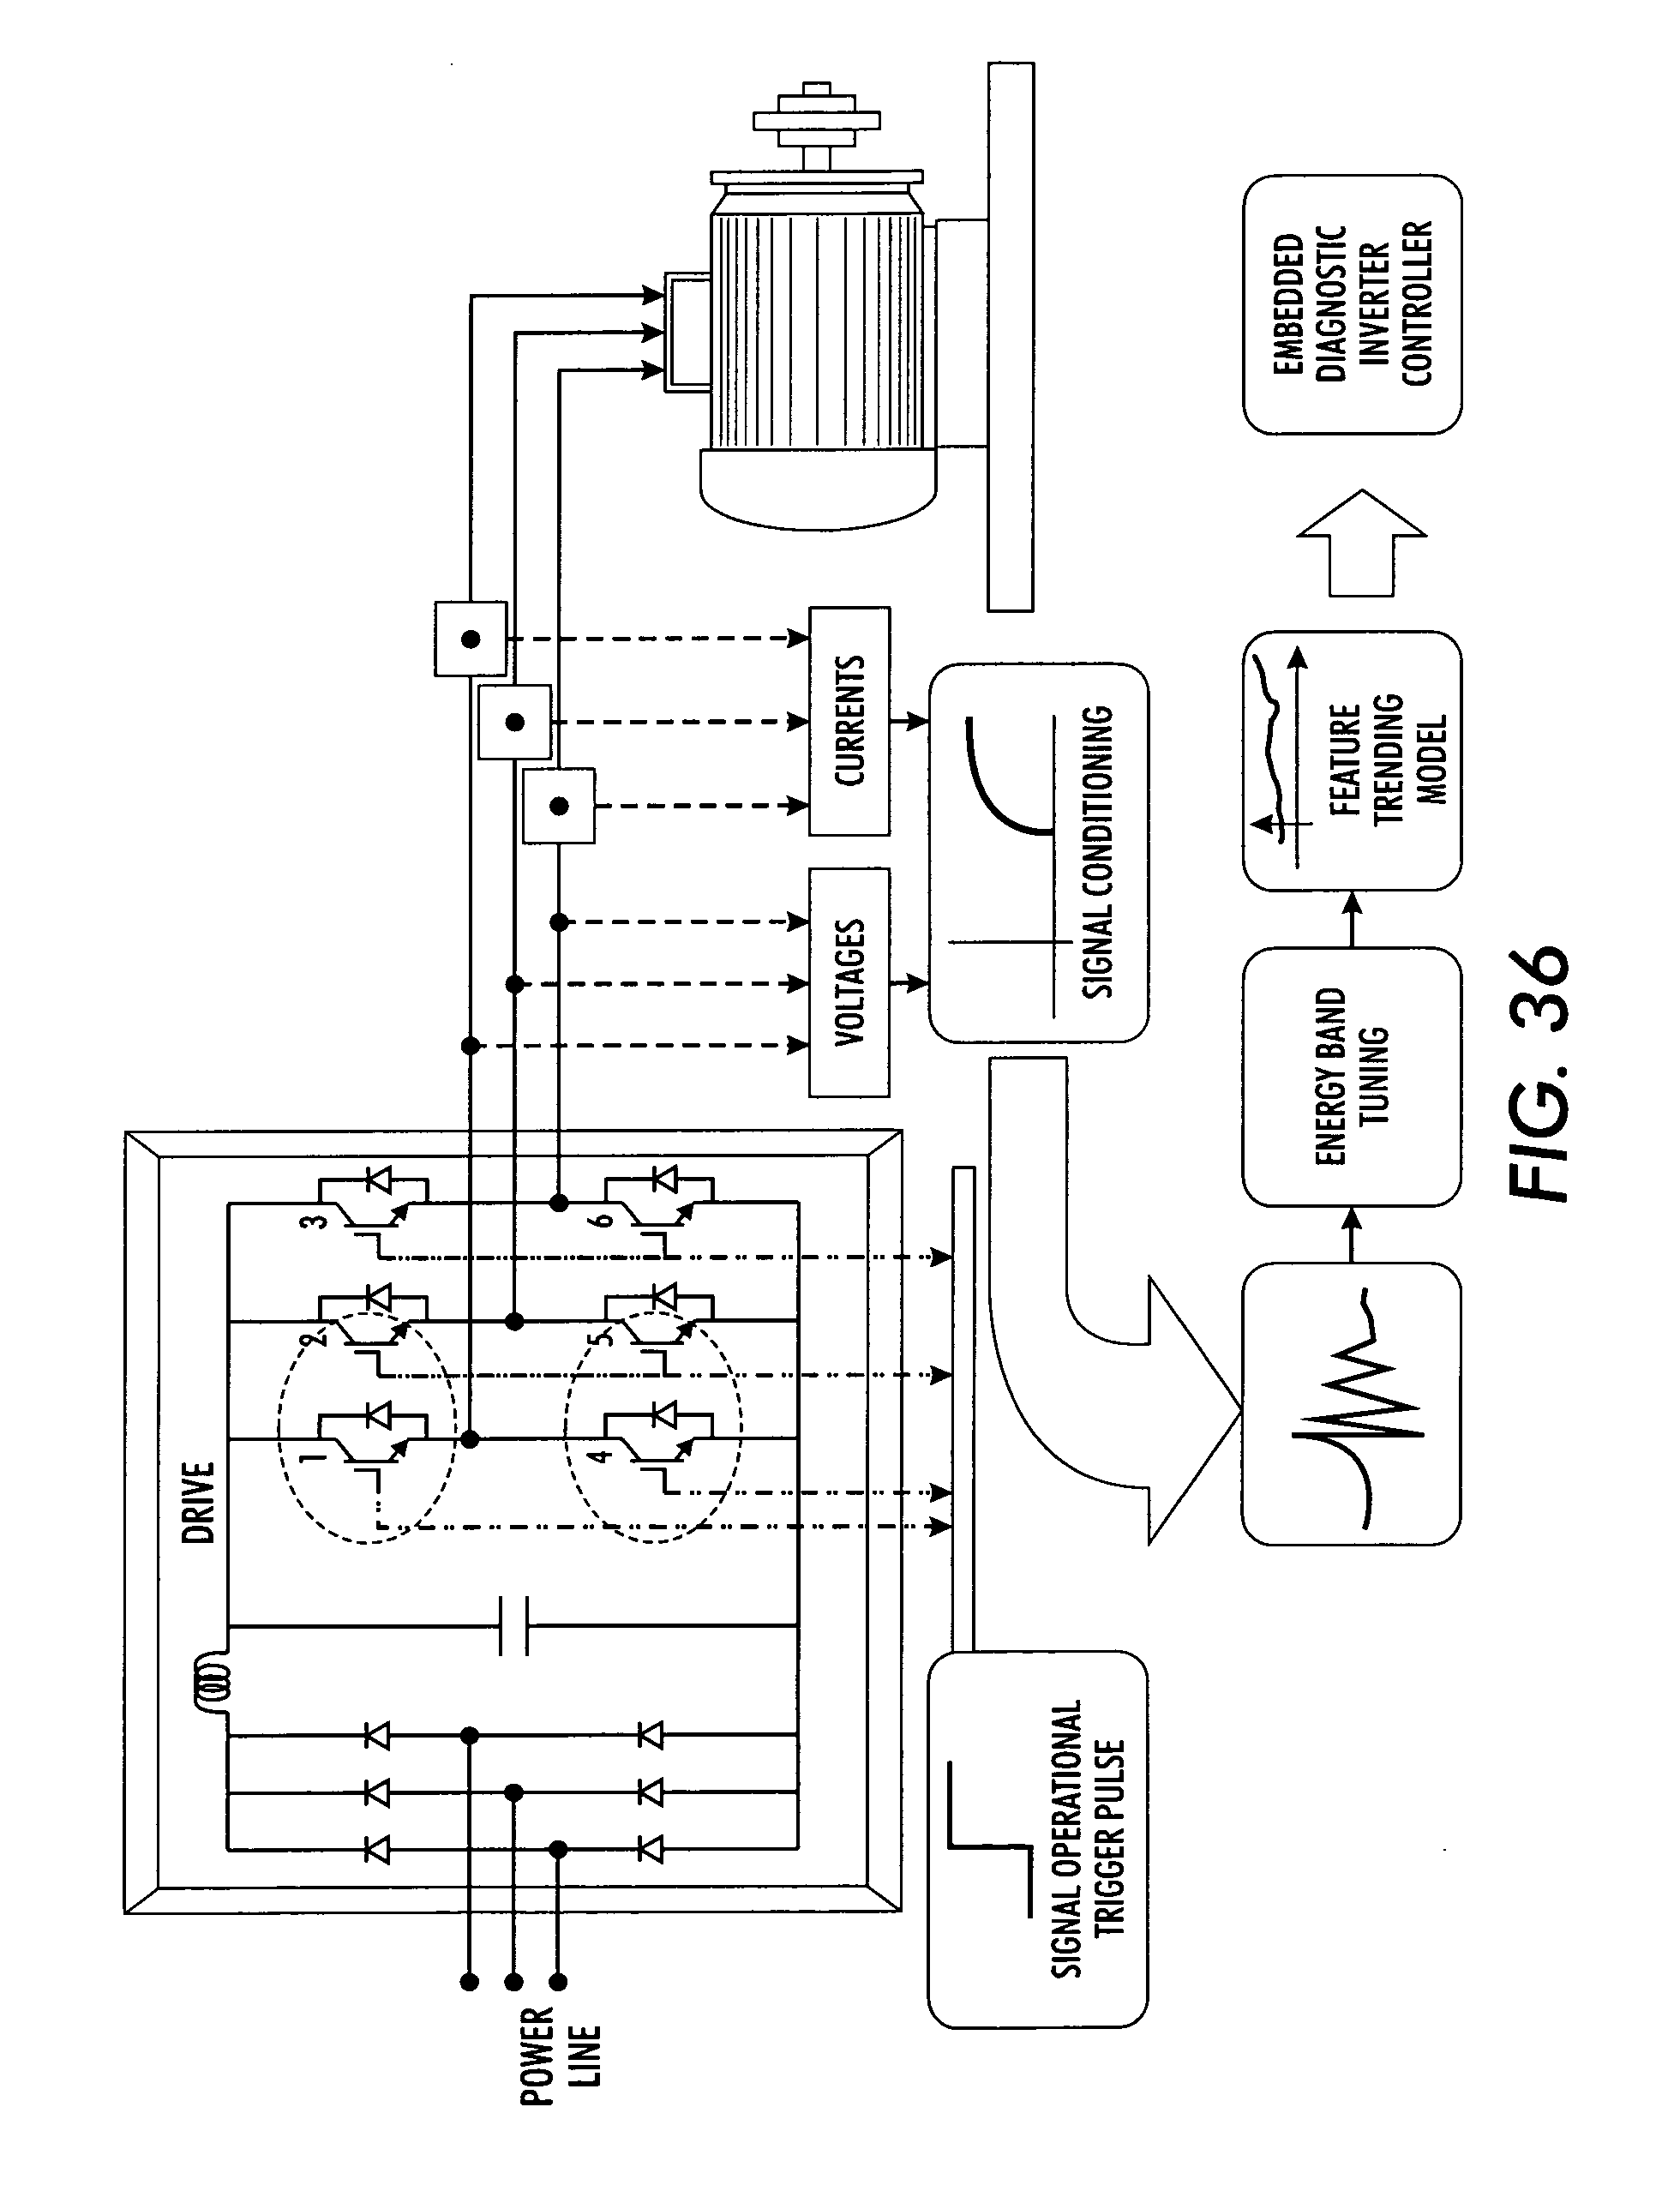 Patent Us8103463 Systems And Methods For Predicting Failure Of Circuit Was Designed To Provide More Efficient Output With A Dynamic Drawing